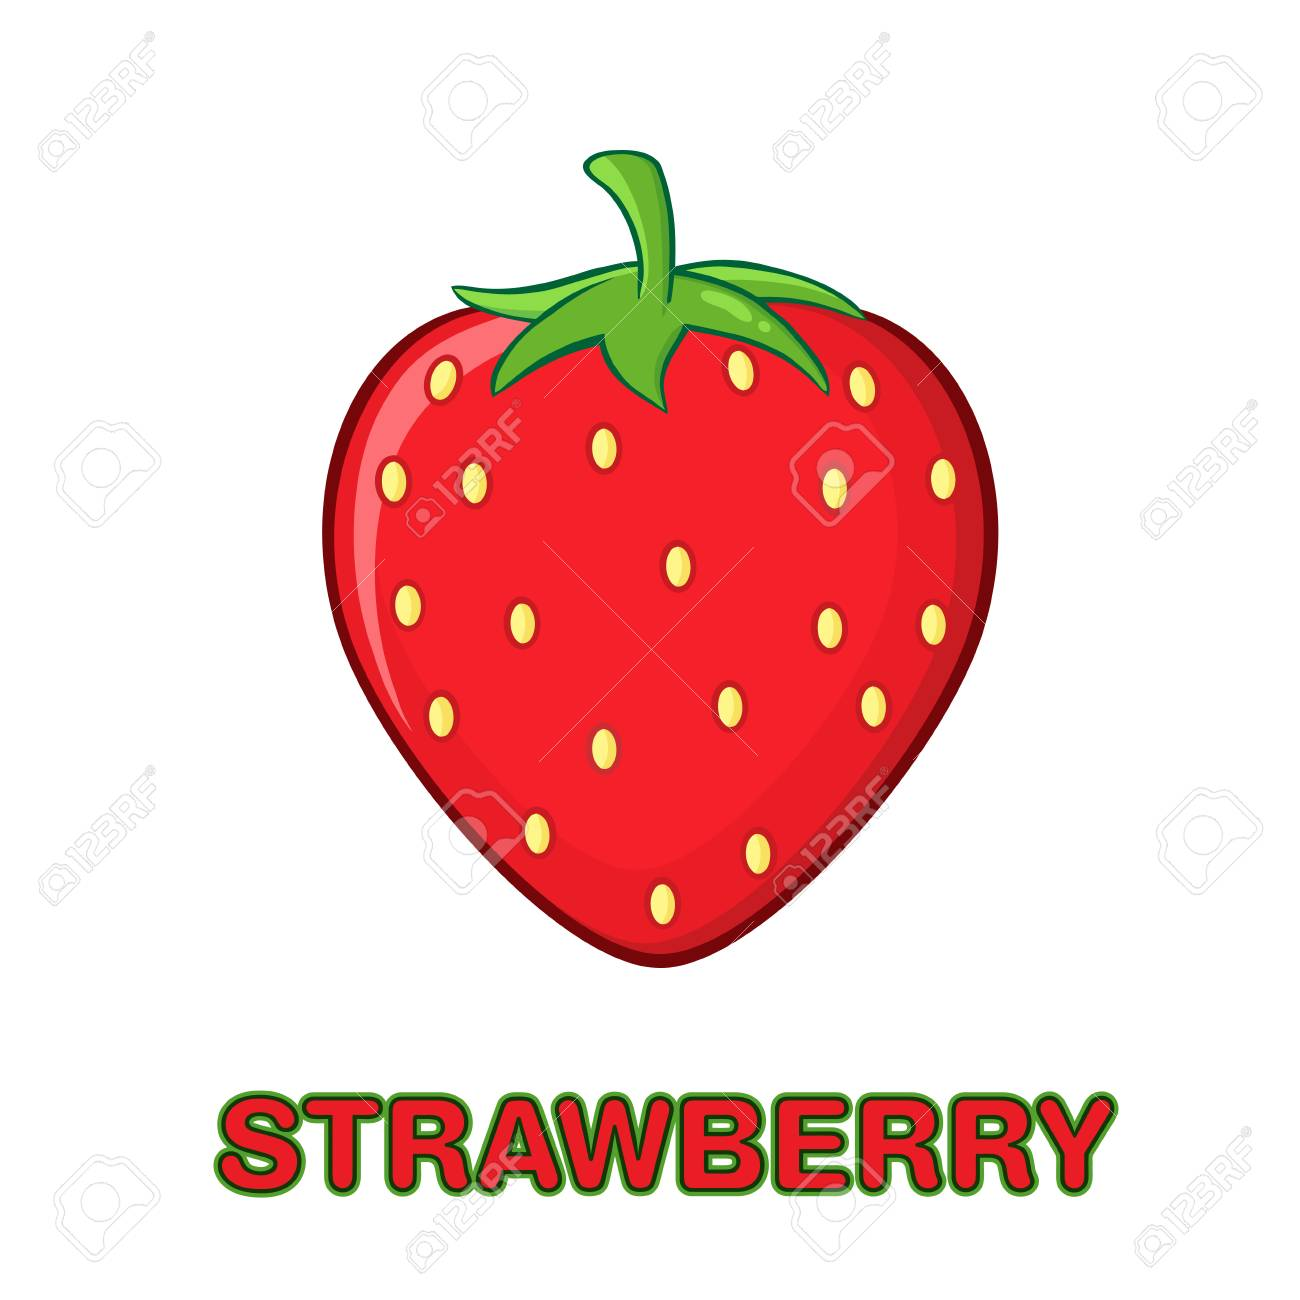 strawberry fruit cartoon drawing simple design illustration stock photo picture and royalty free image image 80435189 strawberry fruit cartoon drawing simple design illustration